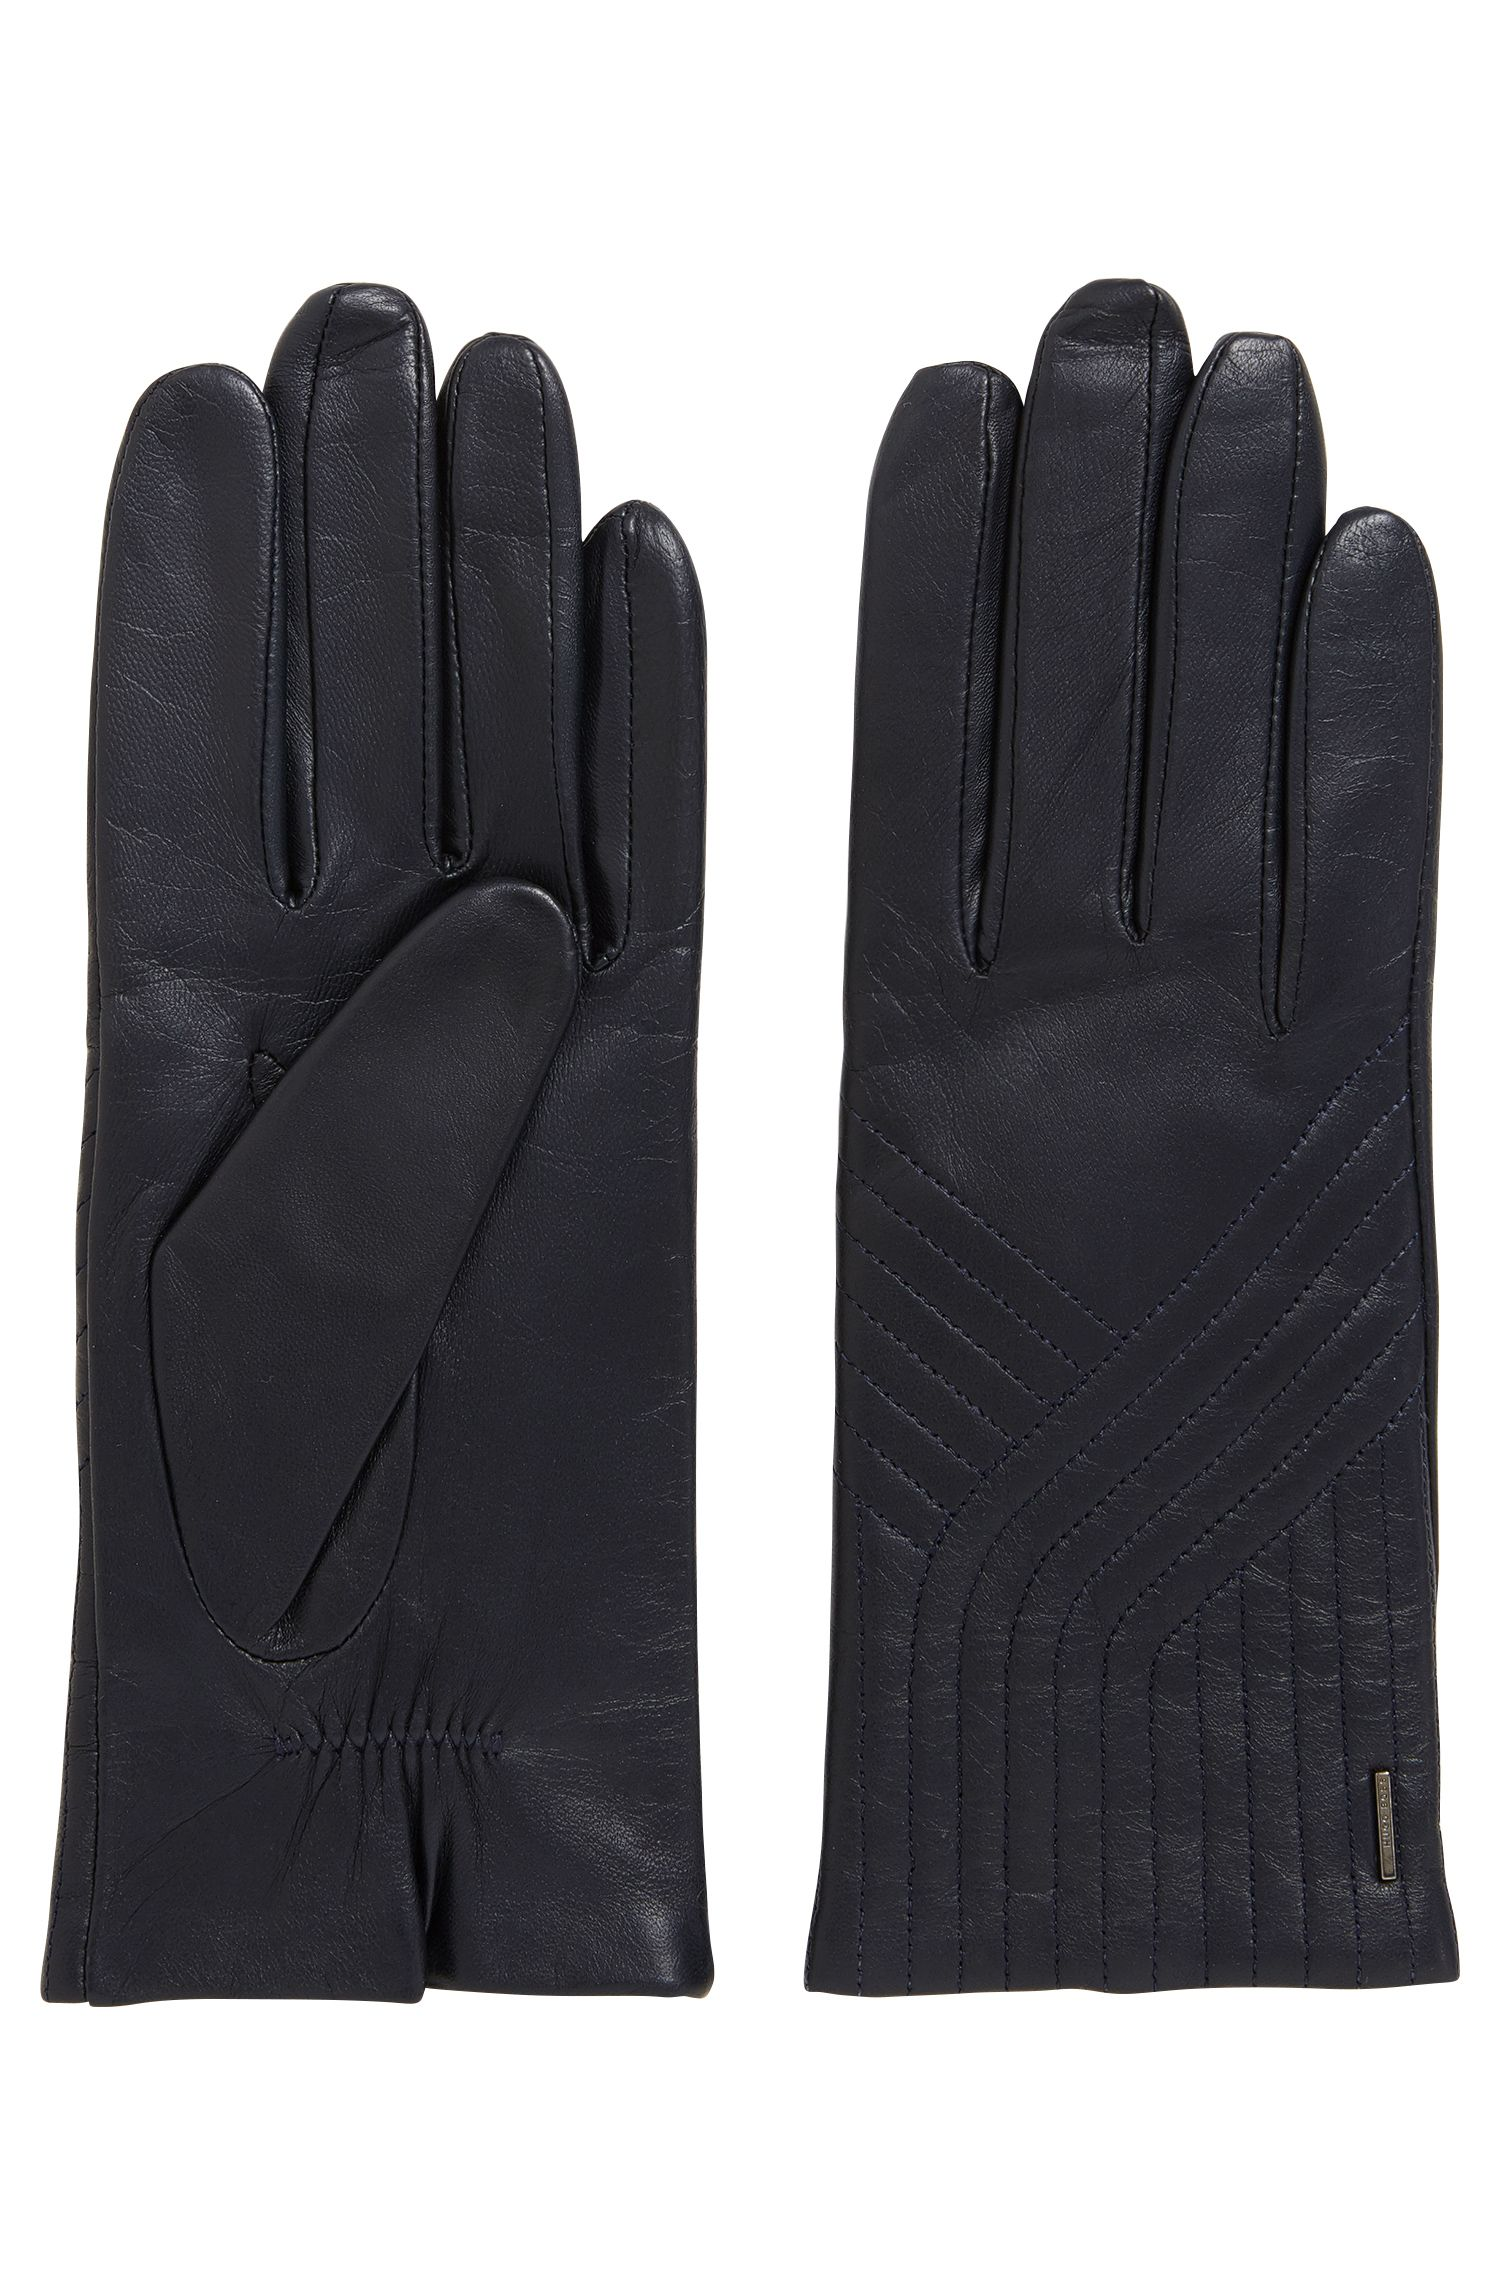 Lambskin leather gloves with geometric stitching